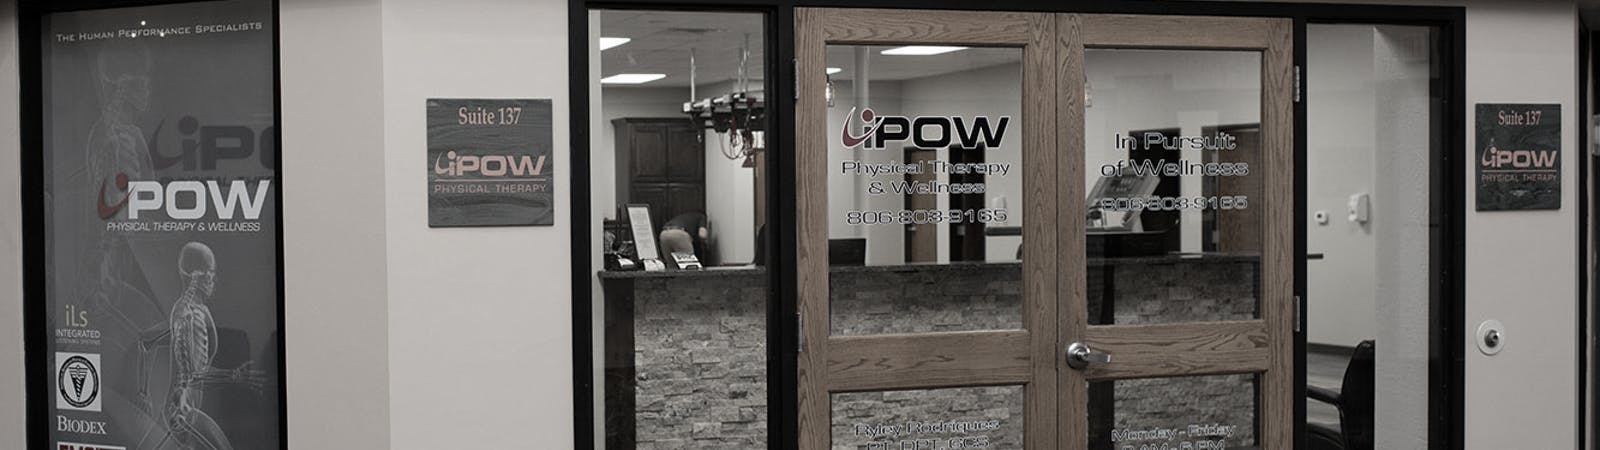 iPOW Physical Therapy & Wellness